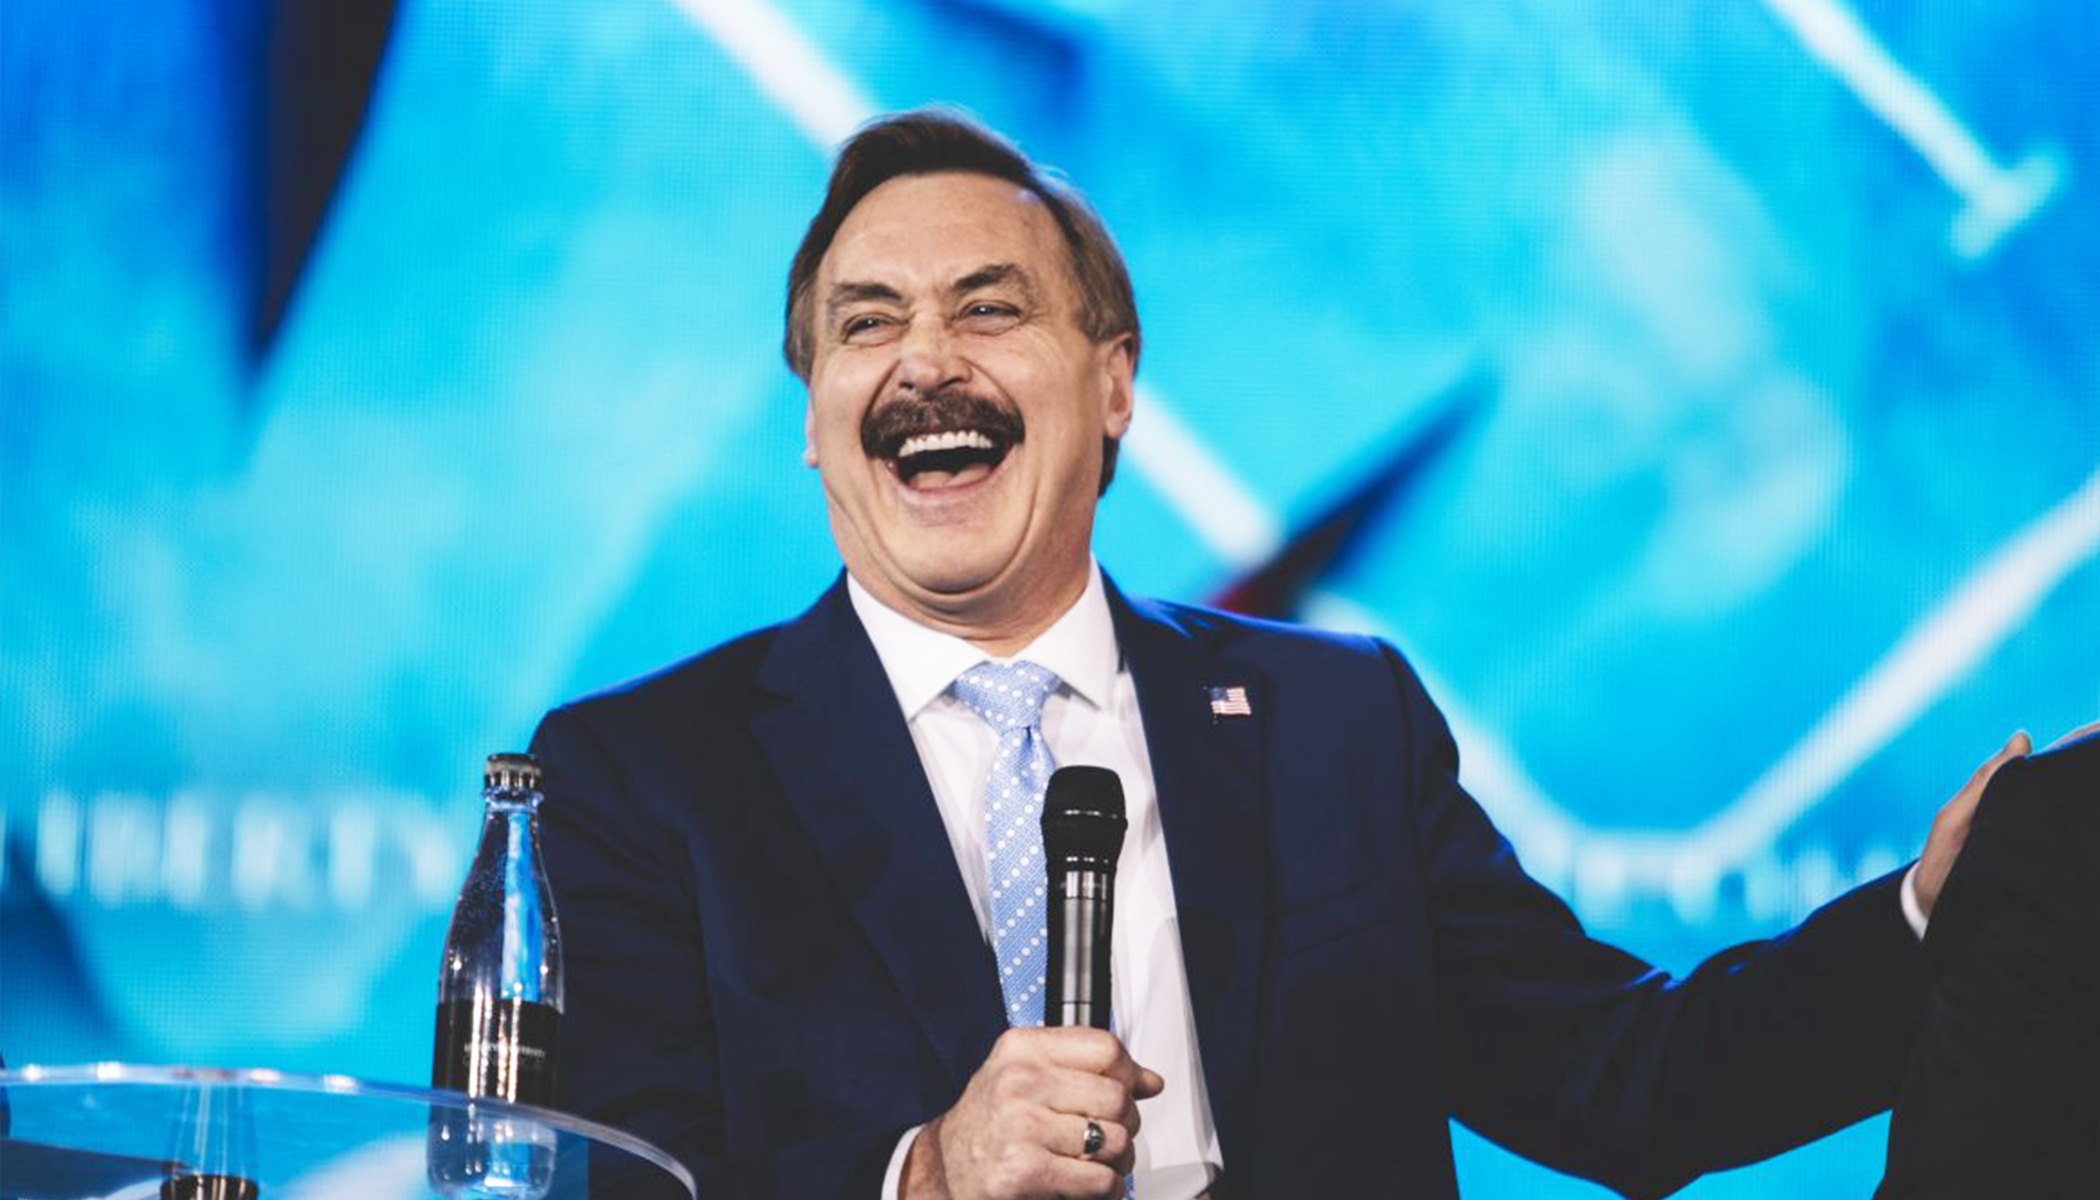 It Was Divine Intervention Founder Of Mypillow Mike Lindell Went From Crack Addict To Ceo